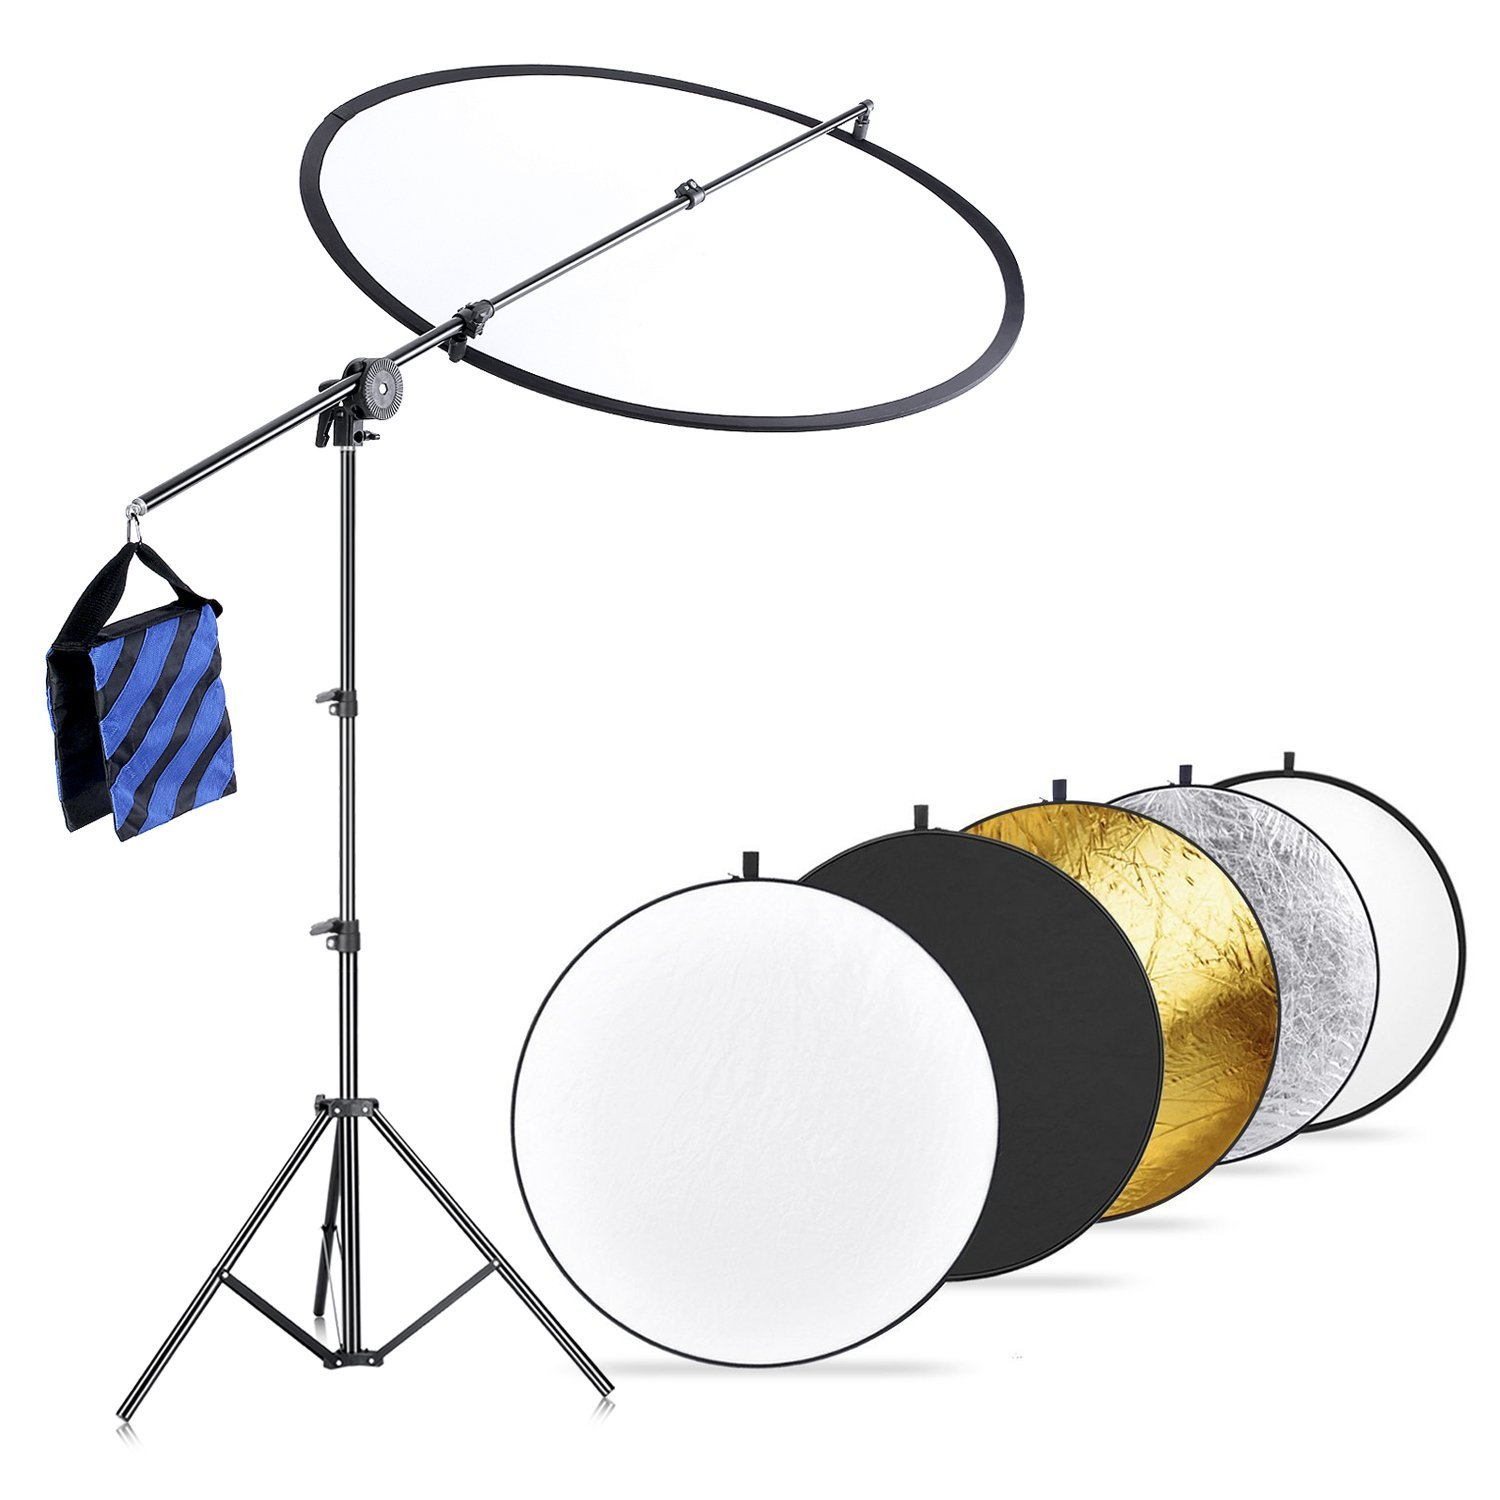 Neewer Photo Studio Lighting Reflector and Boom Arm Stand Kit: 23.6 inches/60 centimeters 5-in-1 Reflector, Holding Arm, 26-75 inches/66-190 centimeters Adjustable Light Stand, Blue/Black Sandbag